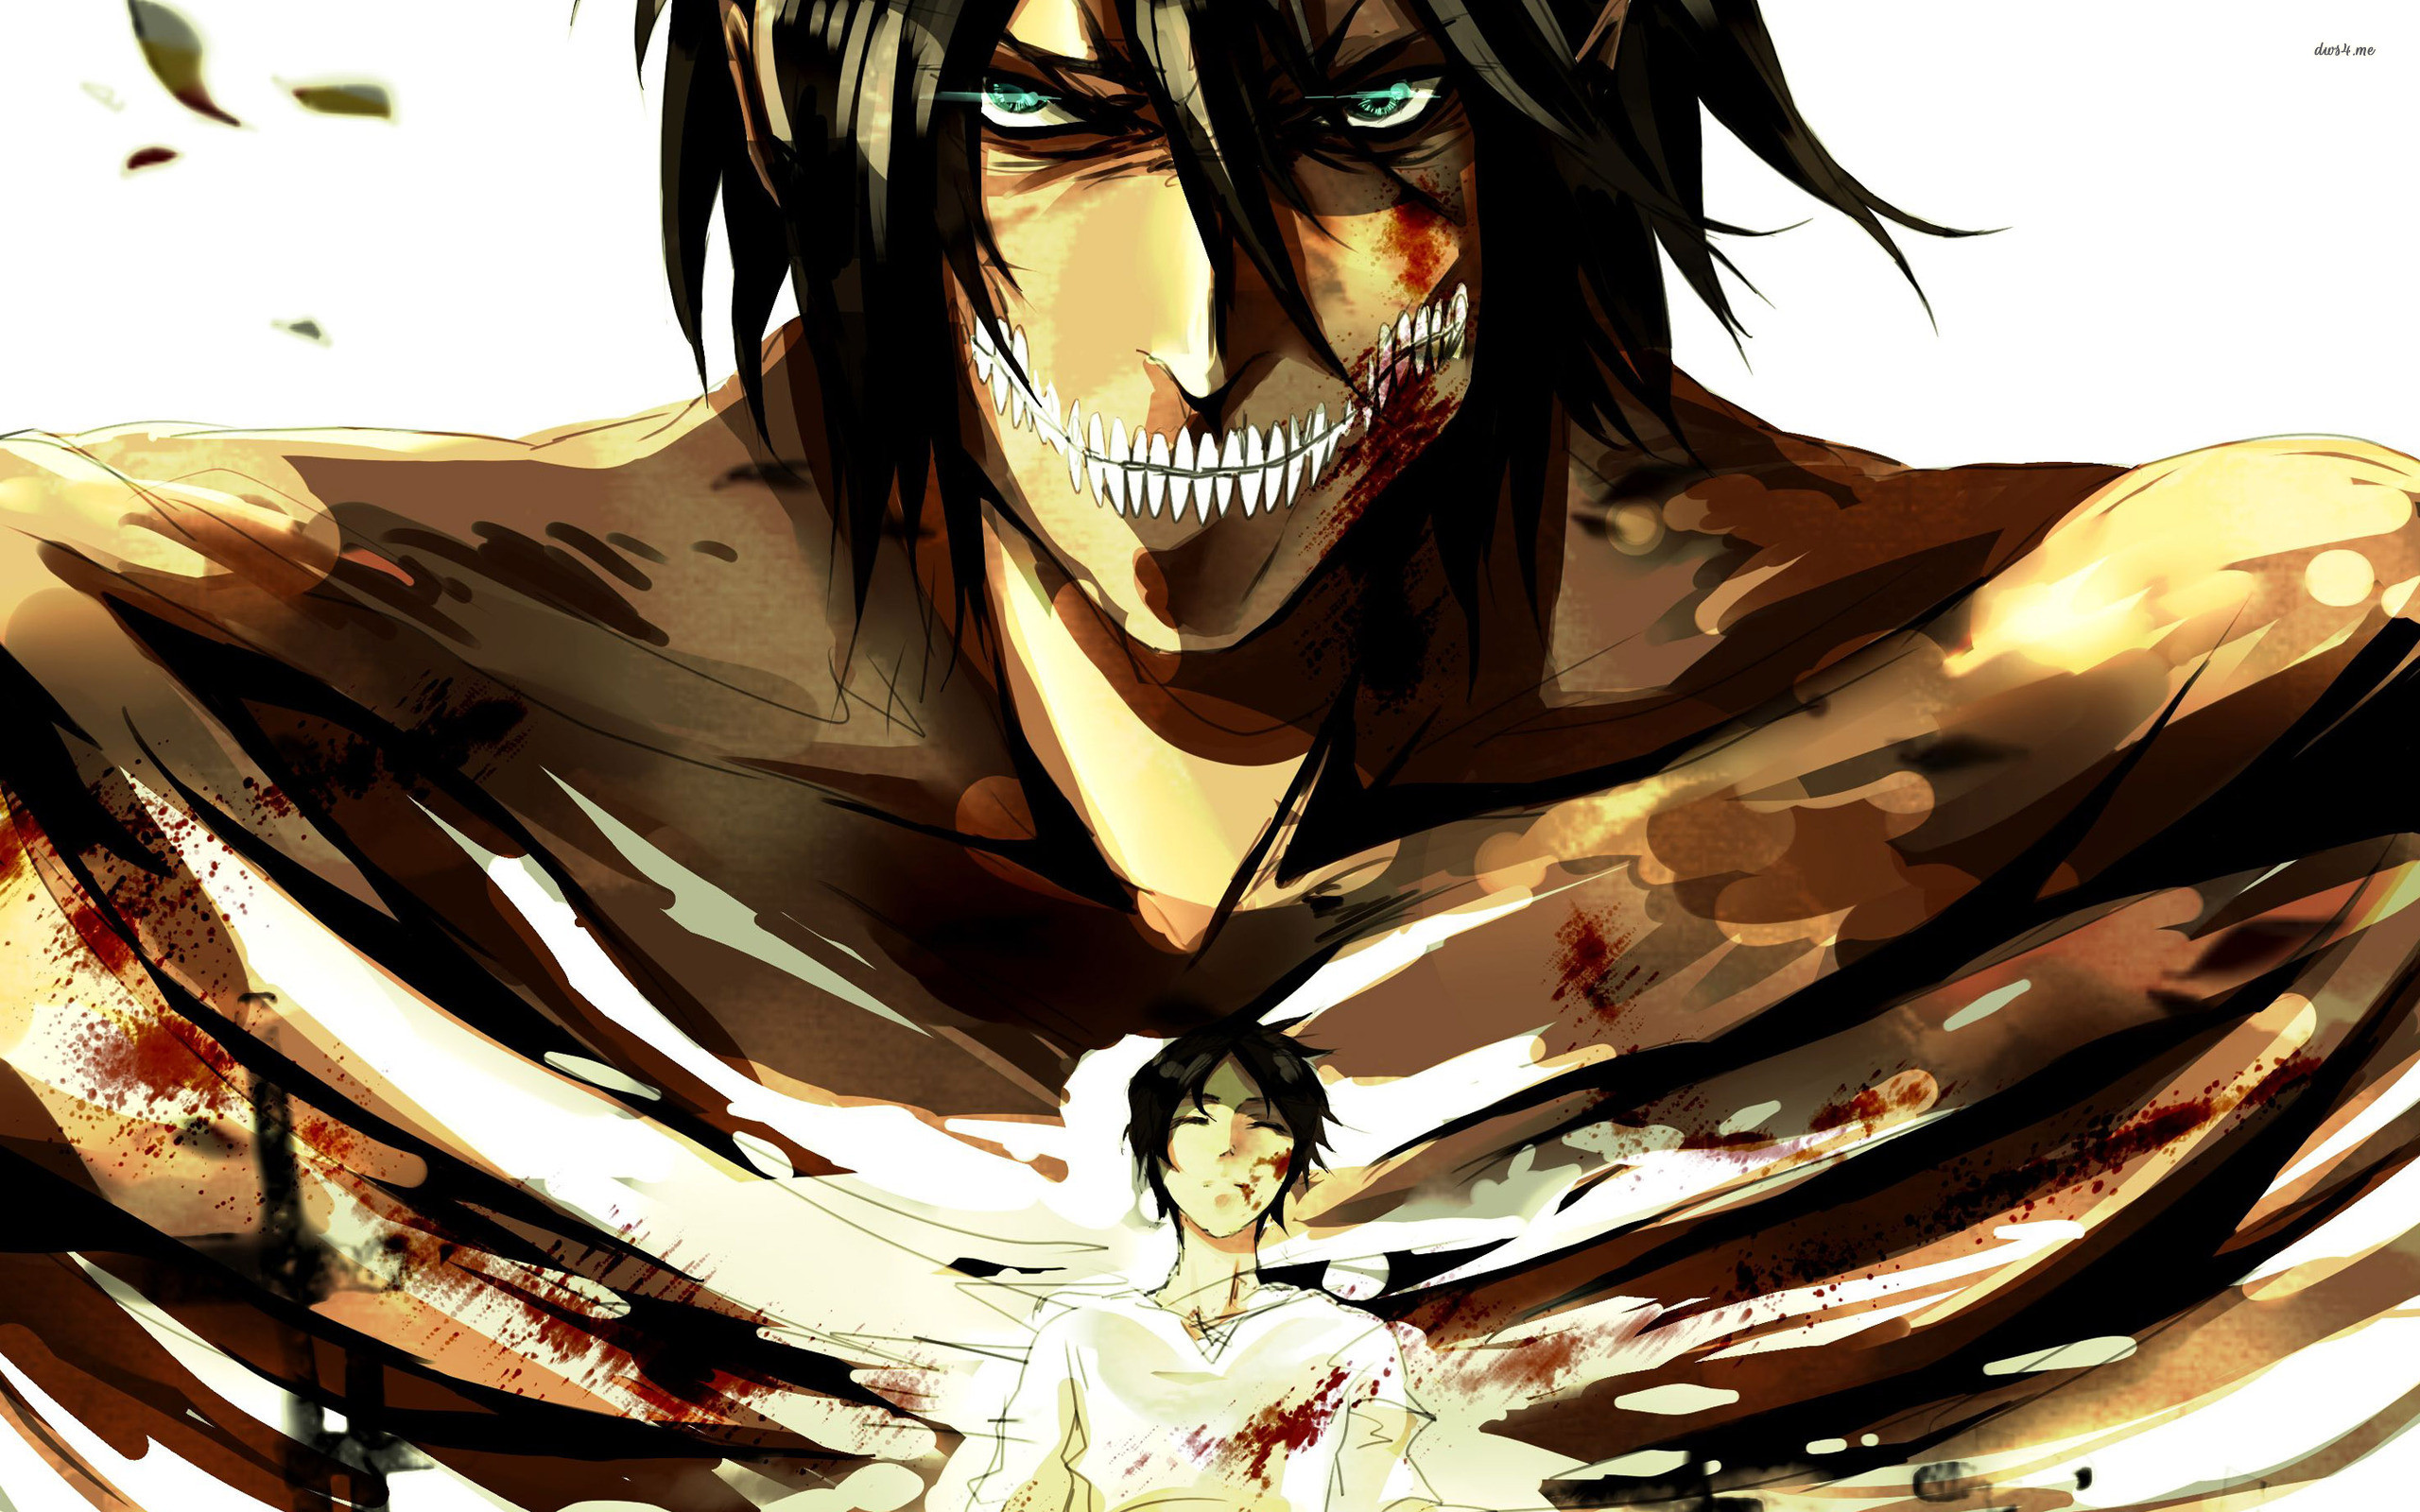 Find hd wallpapers for your desktop, mac, windows, apple, iphone or android device. Attack on Titan Wallpapers (71+ images)